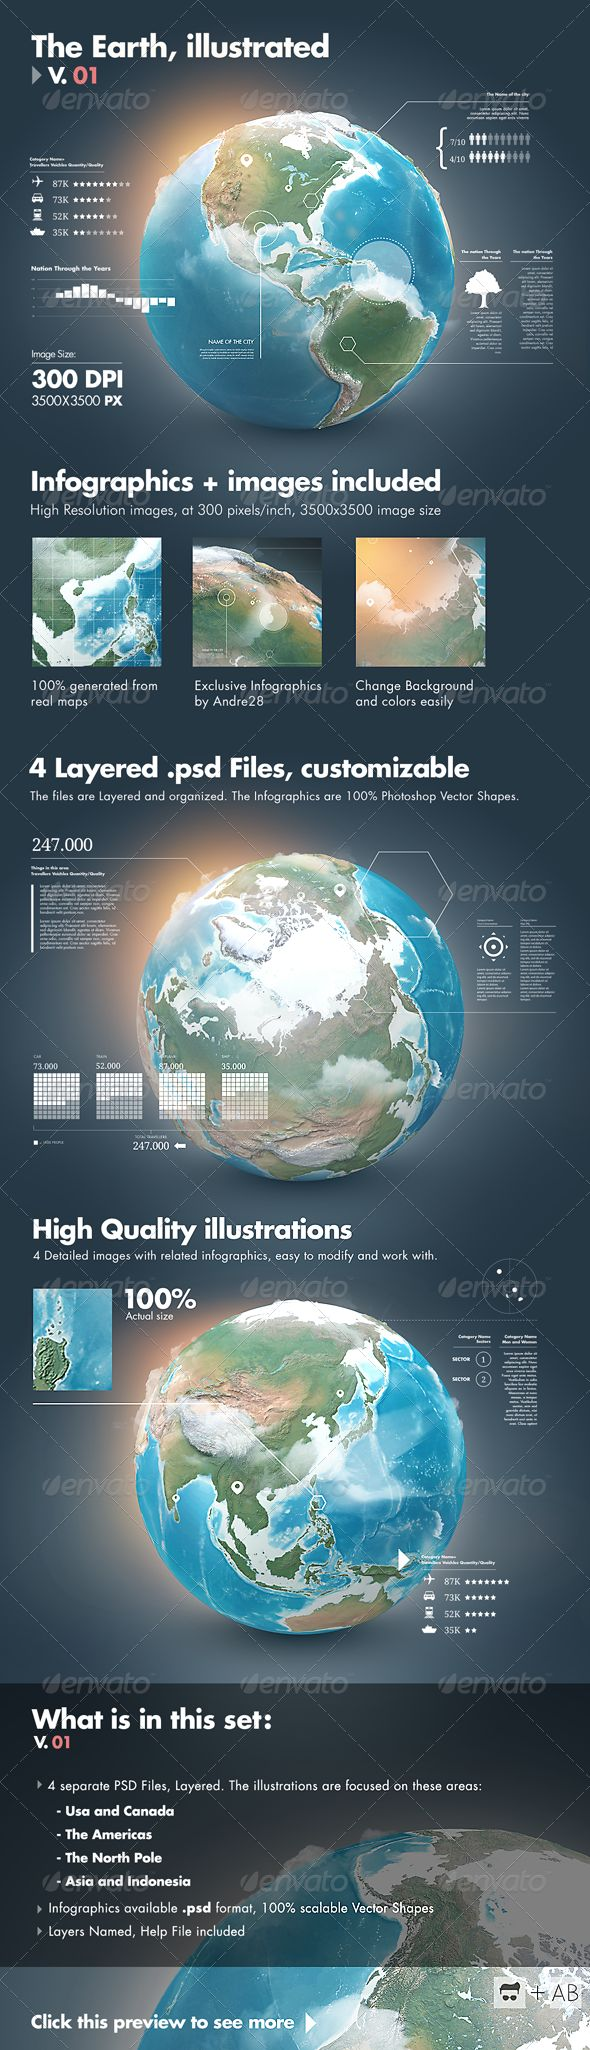 15 best prezi infographic images on pinterest infographics get the other set world infographics illustrations of the earth layered in d format high resolution images at publicscrutiny Image collections